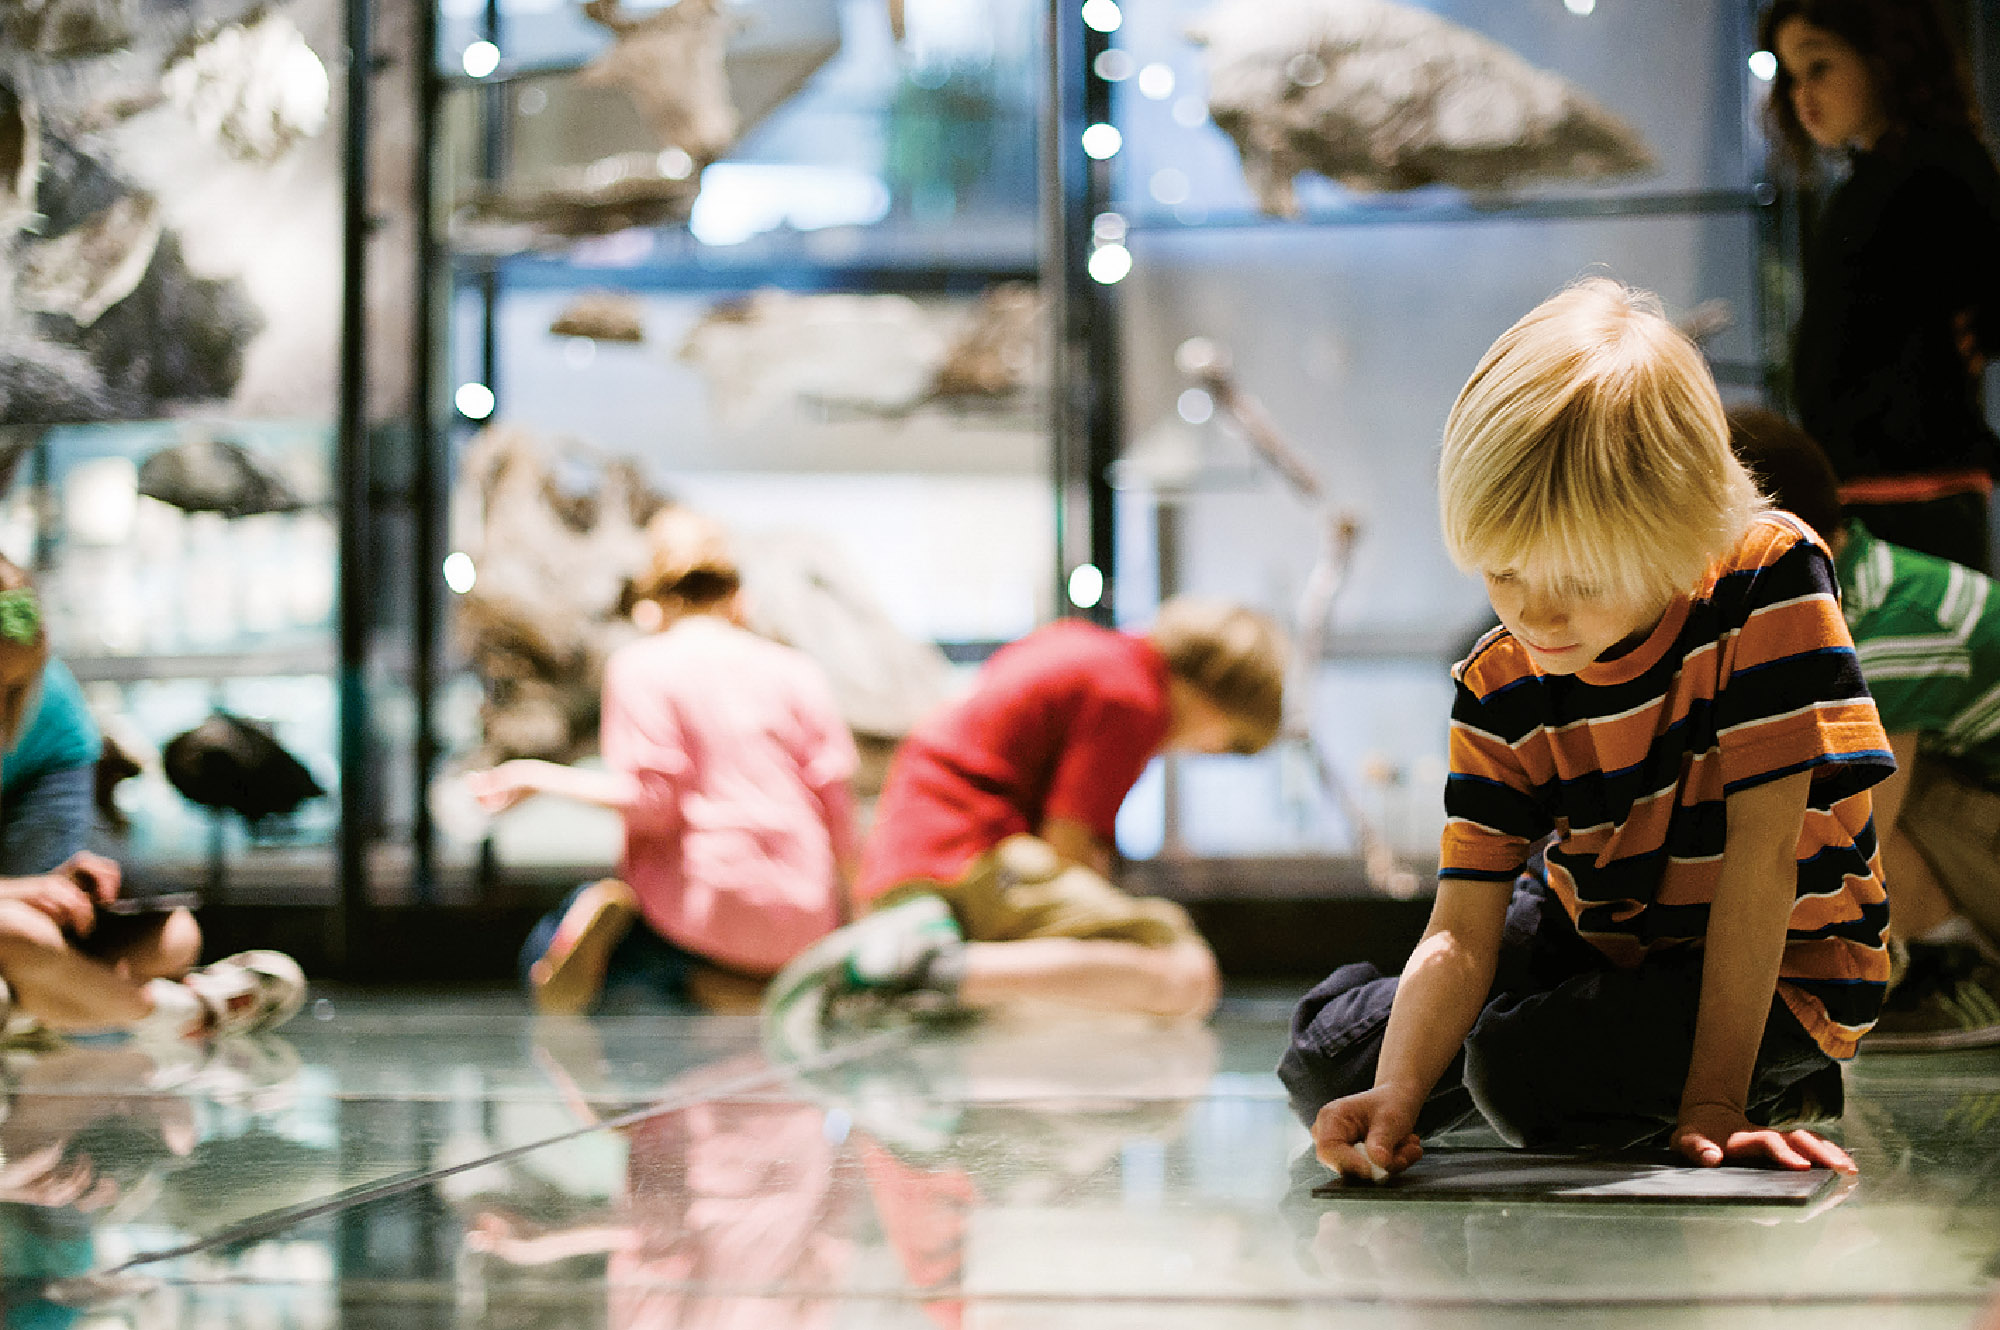 Saturday Discovery Classes at NHMU in Salt Lake City